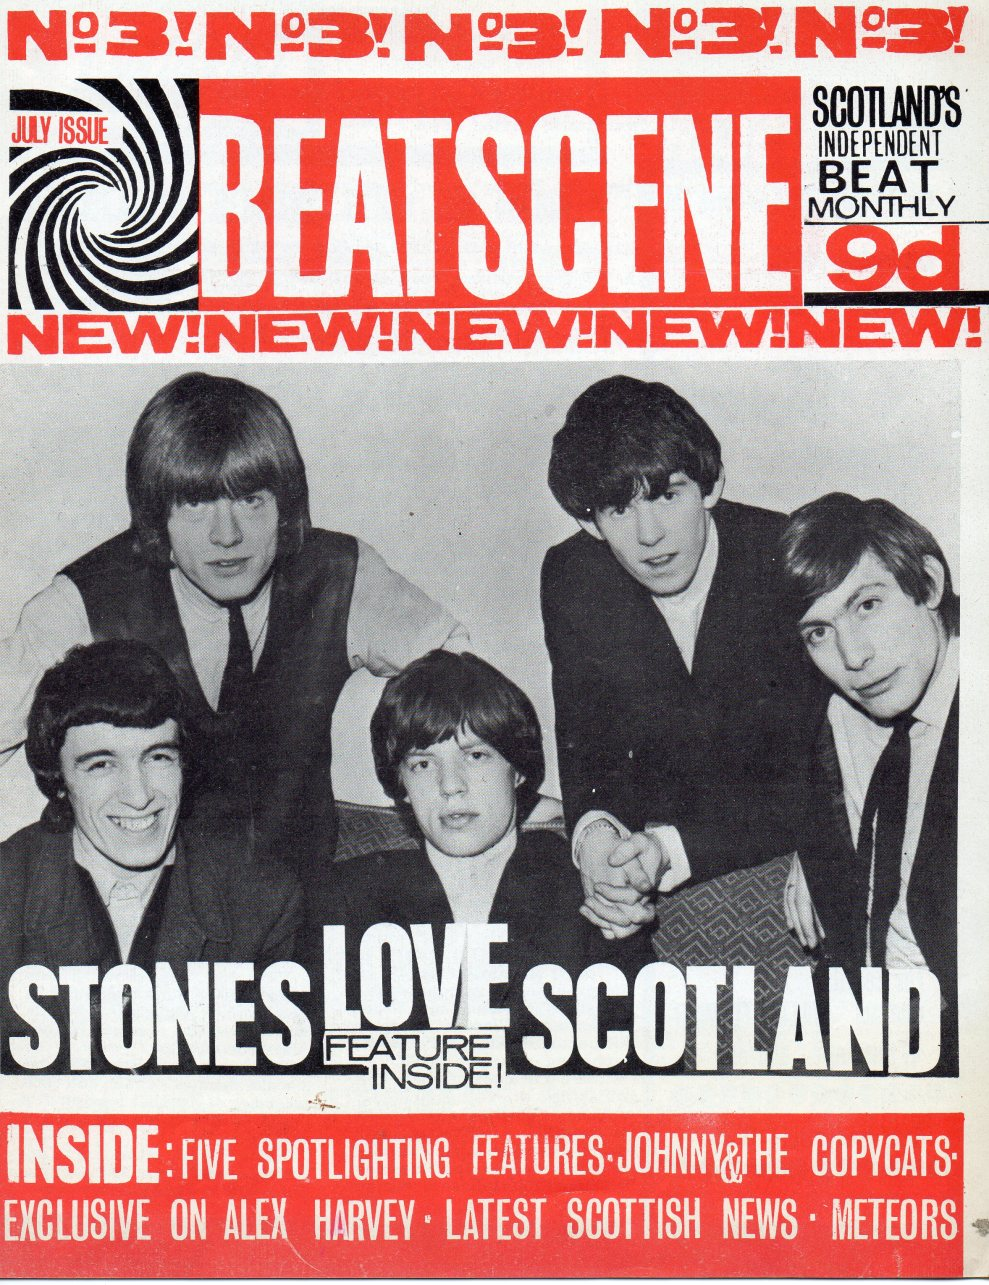 Local BEAT magazines began popping up around Scotland in early 1960s